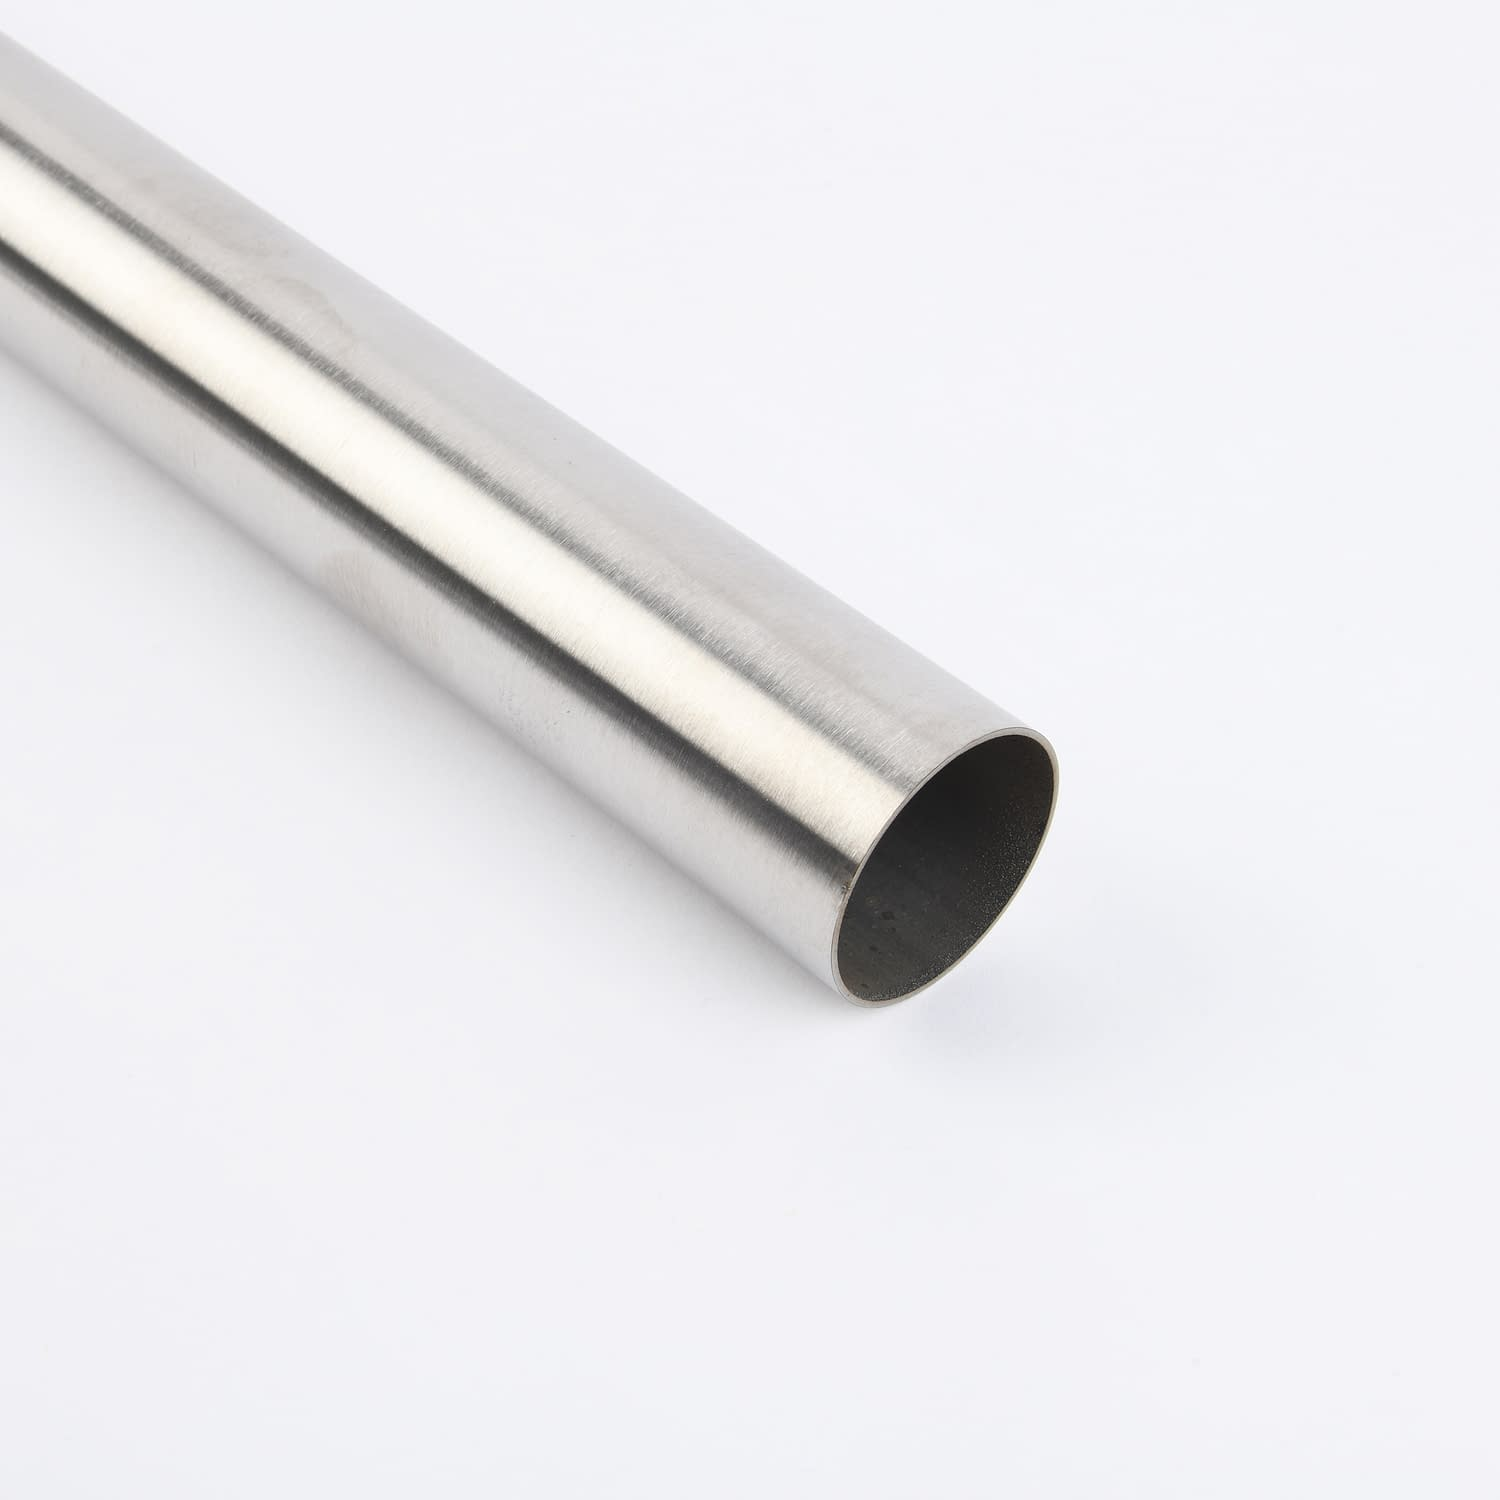 Brushed Stainless Steel Handrail Tube